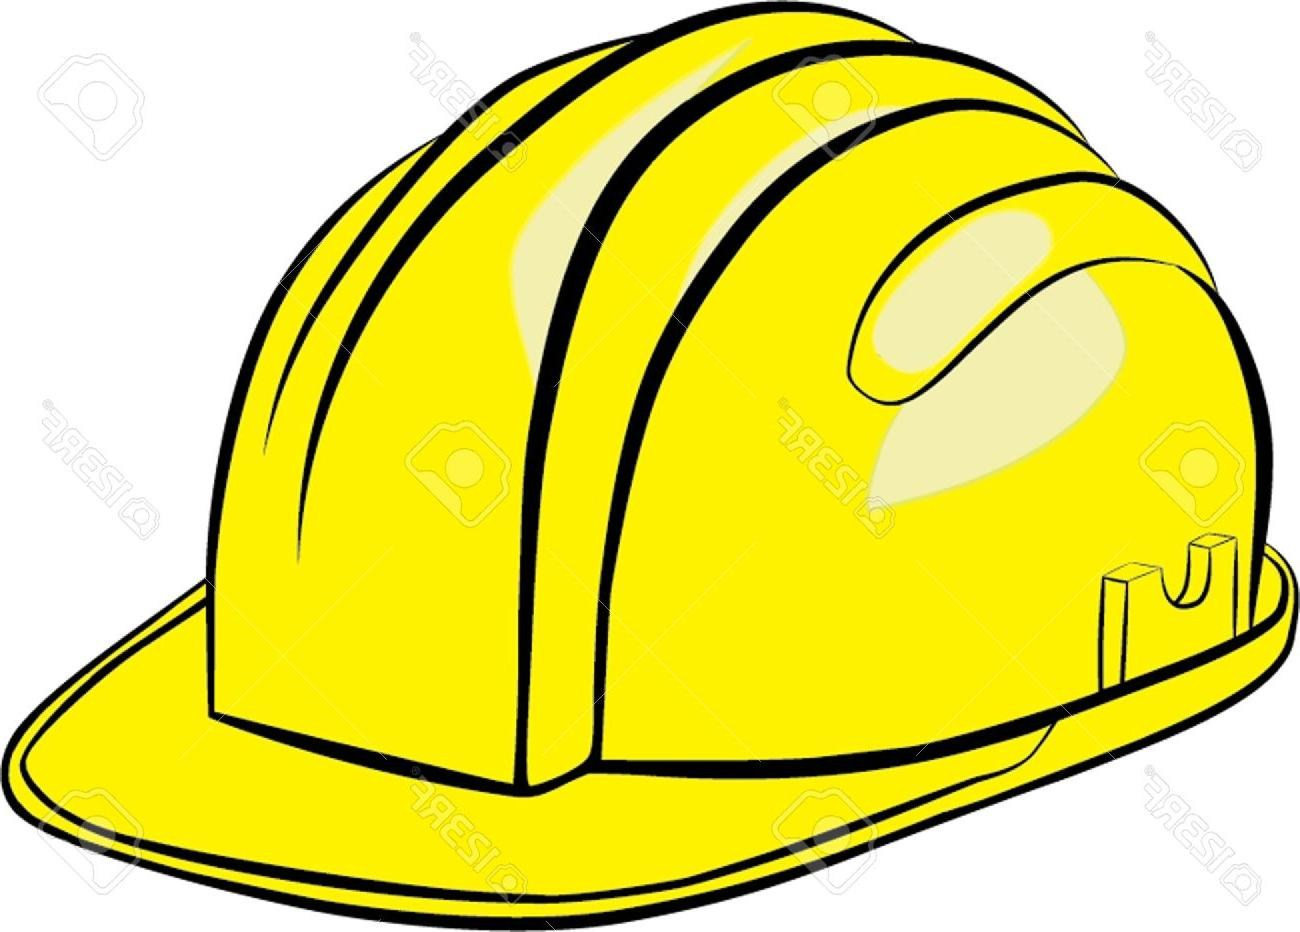 png library download Hard lovely top helmet. Construction worker hat clipart.